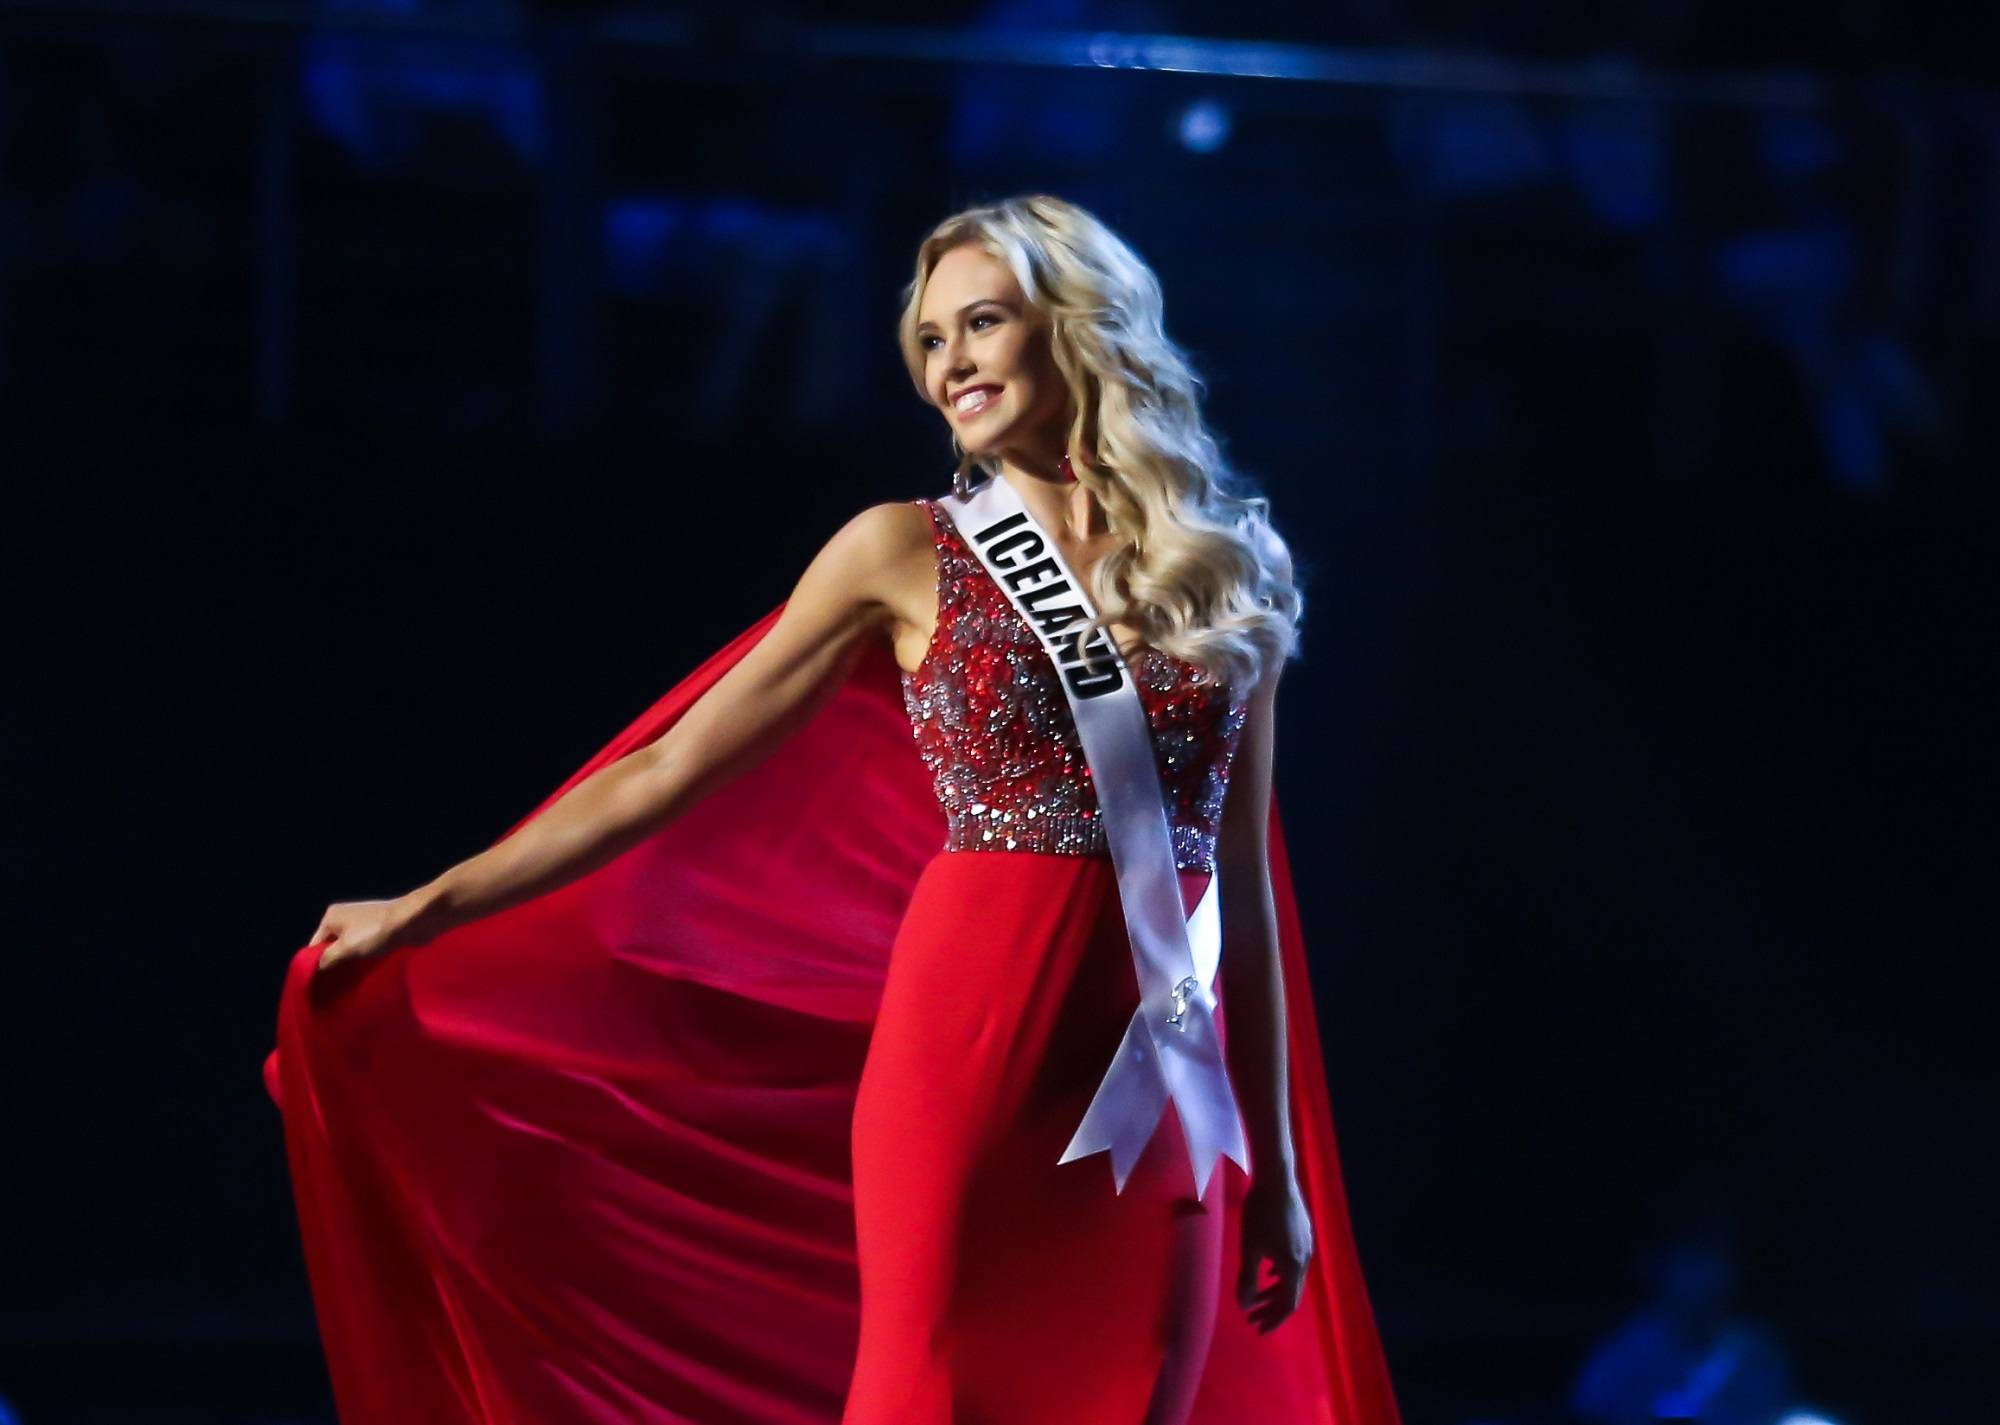 Miss Universe 2018 hairstyles: Miss Iceland Katrin Lea Elenudottir with long blonde wavy hair wearing a red gown on stage